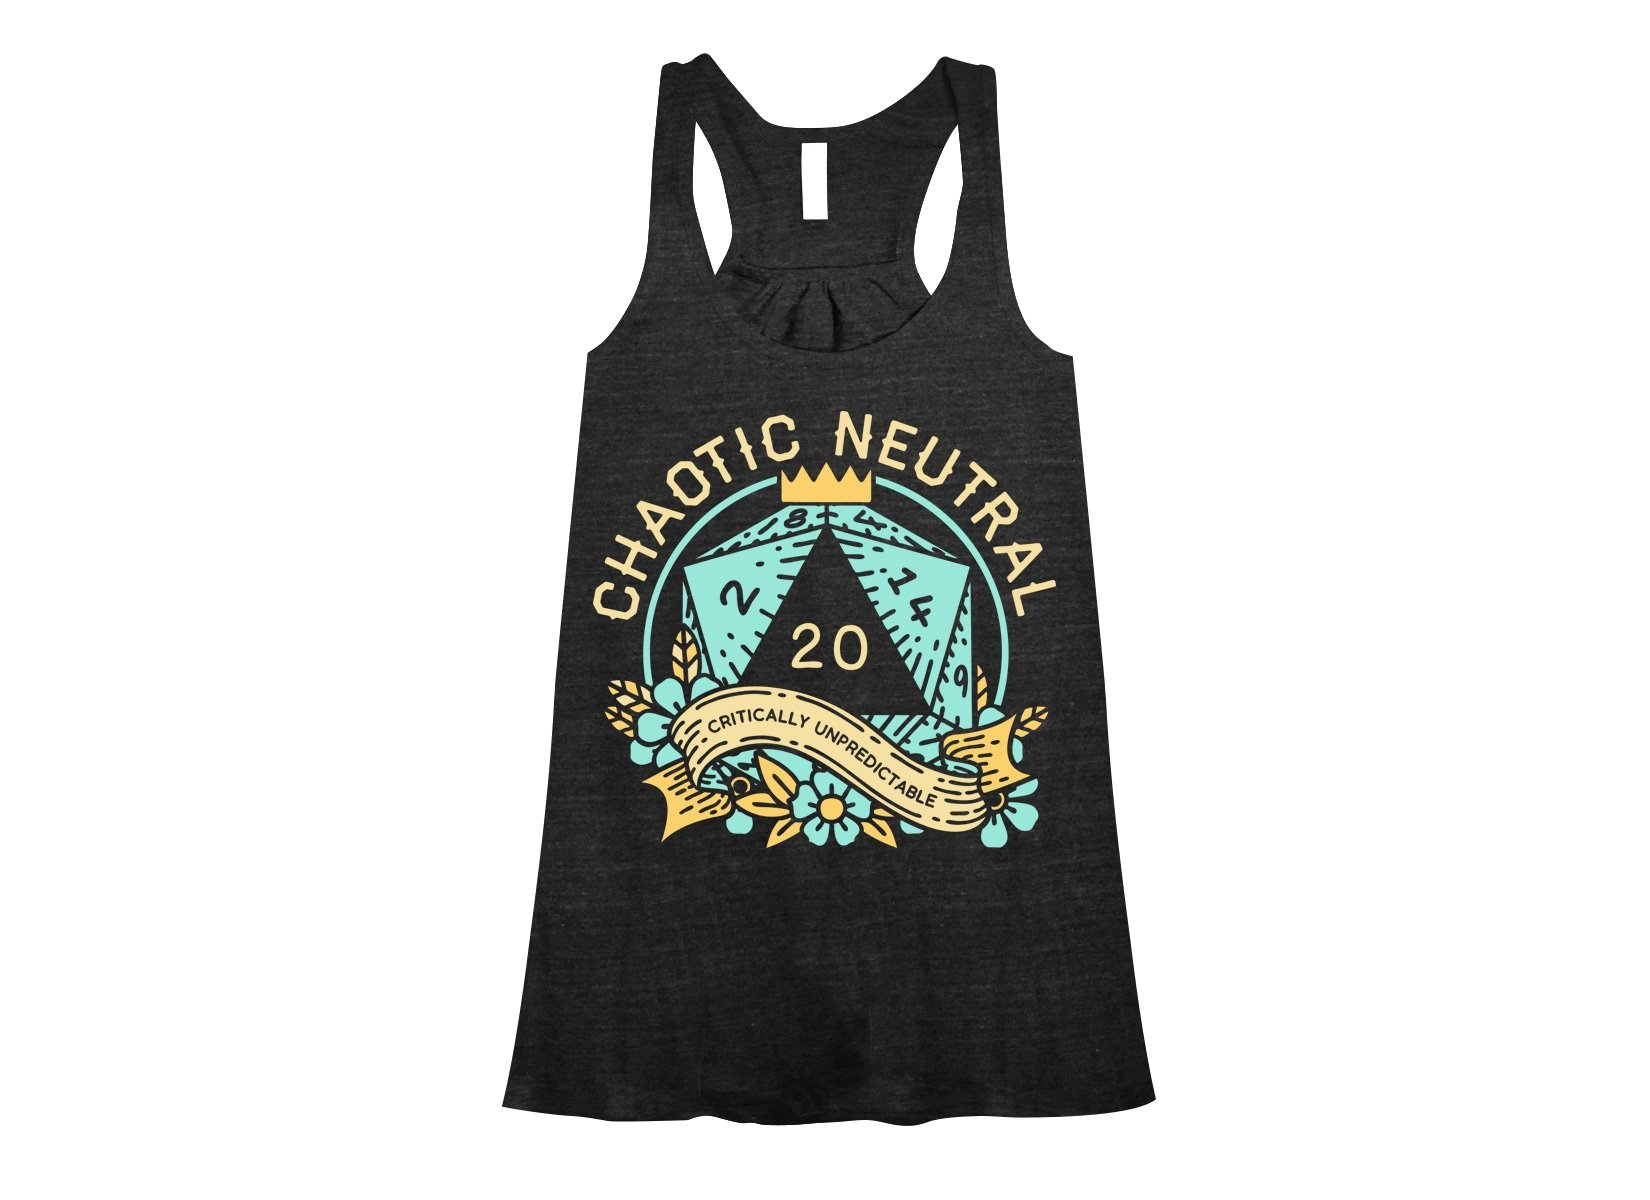 Chaotic Neutral on Womens Tanks T-Shirt